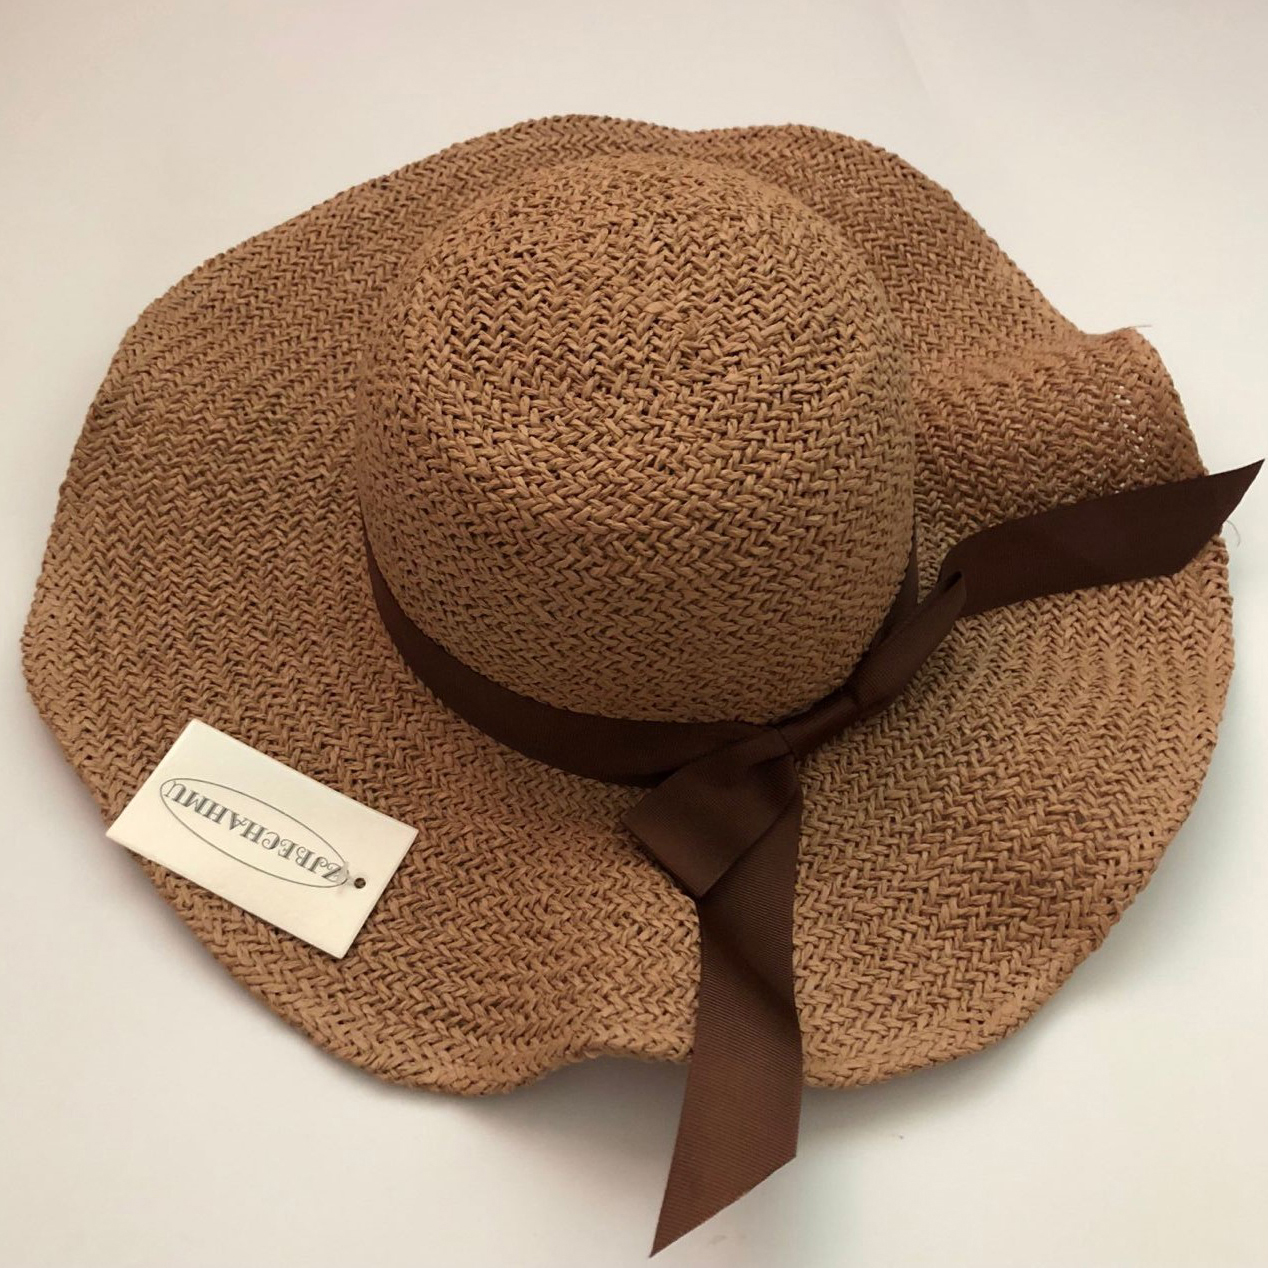 ZJBECHAHMU Hats Casual Solid Straw Sun Hats For Women Girl Summer Big beach sunshade Bow hat Lafite Straw high quality 2019 New in Women 39 s Sun Hats from Apparel Accessories